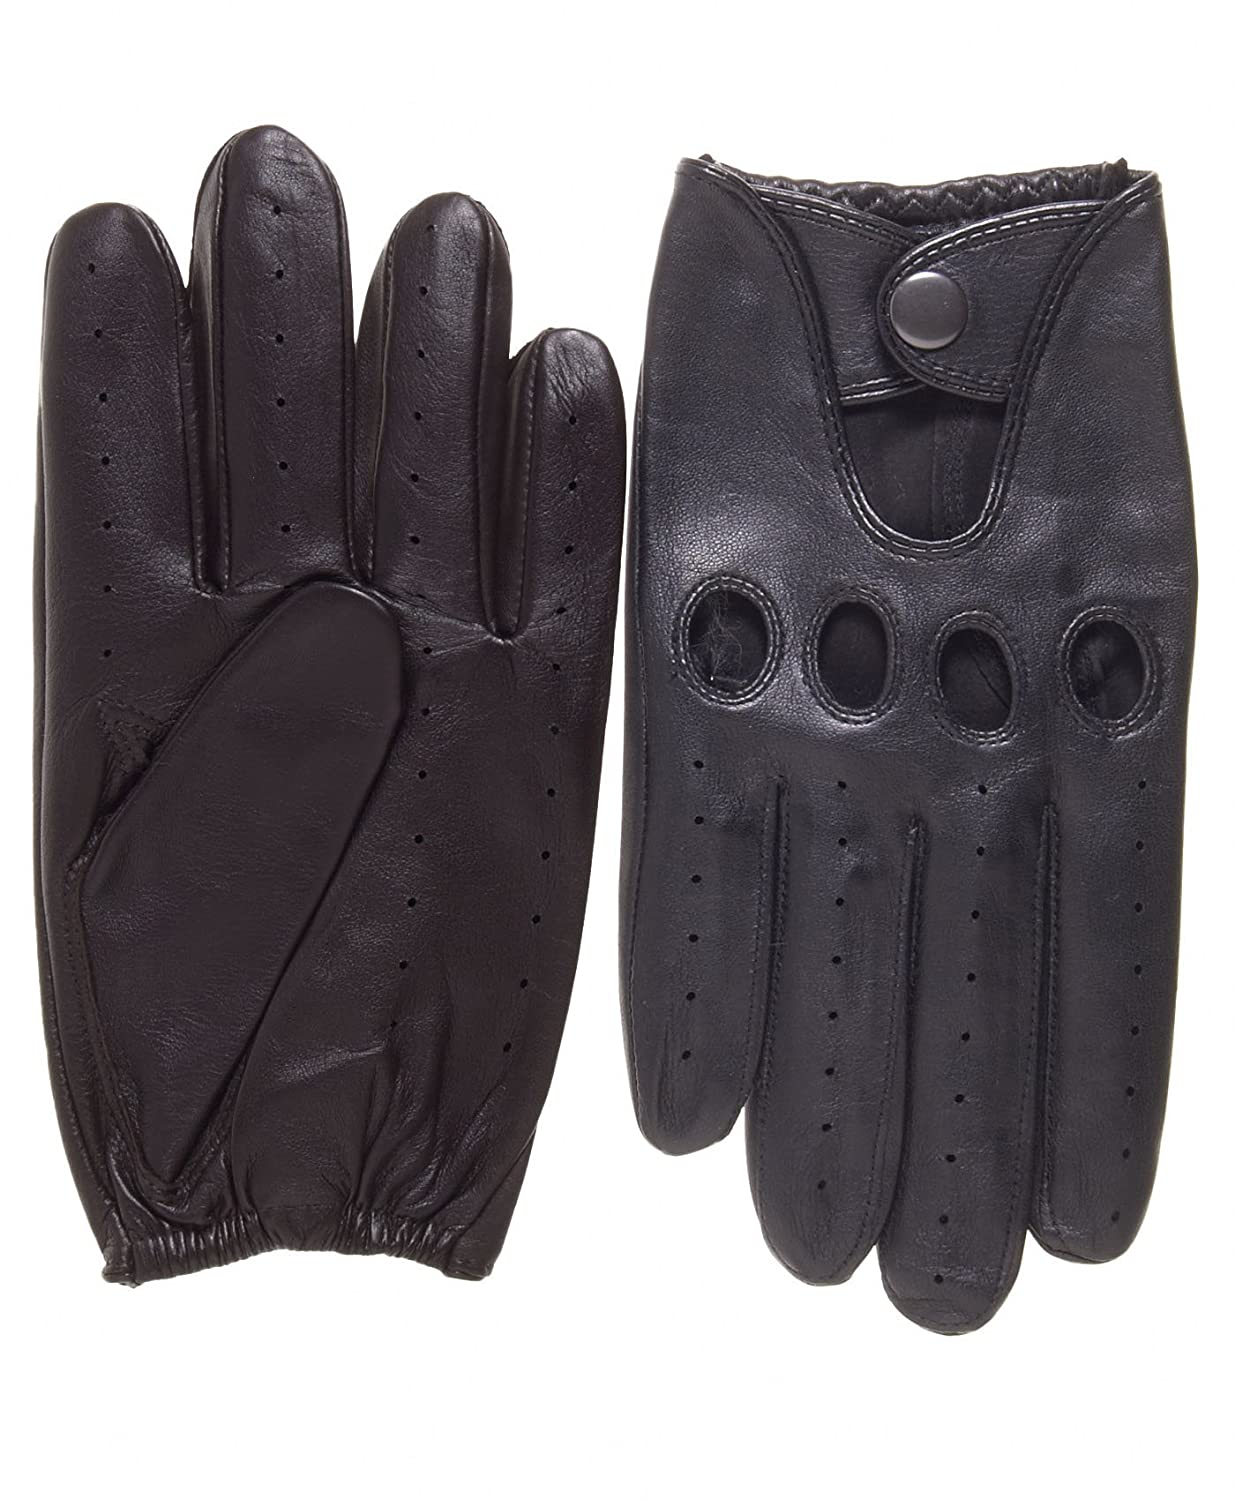 Mens leather driving gloves australia - Pratt And Hart Traditional Leather Driving Gloves Size S Color Black At Amazon Men S Clothing Store Cold Weather Gloves